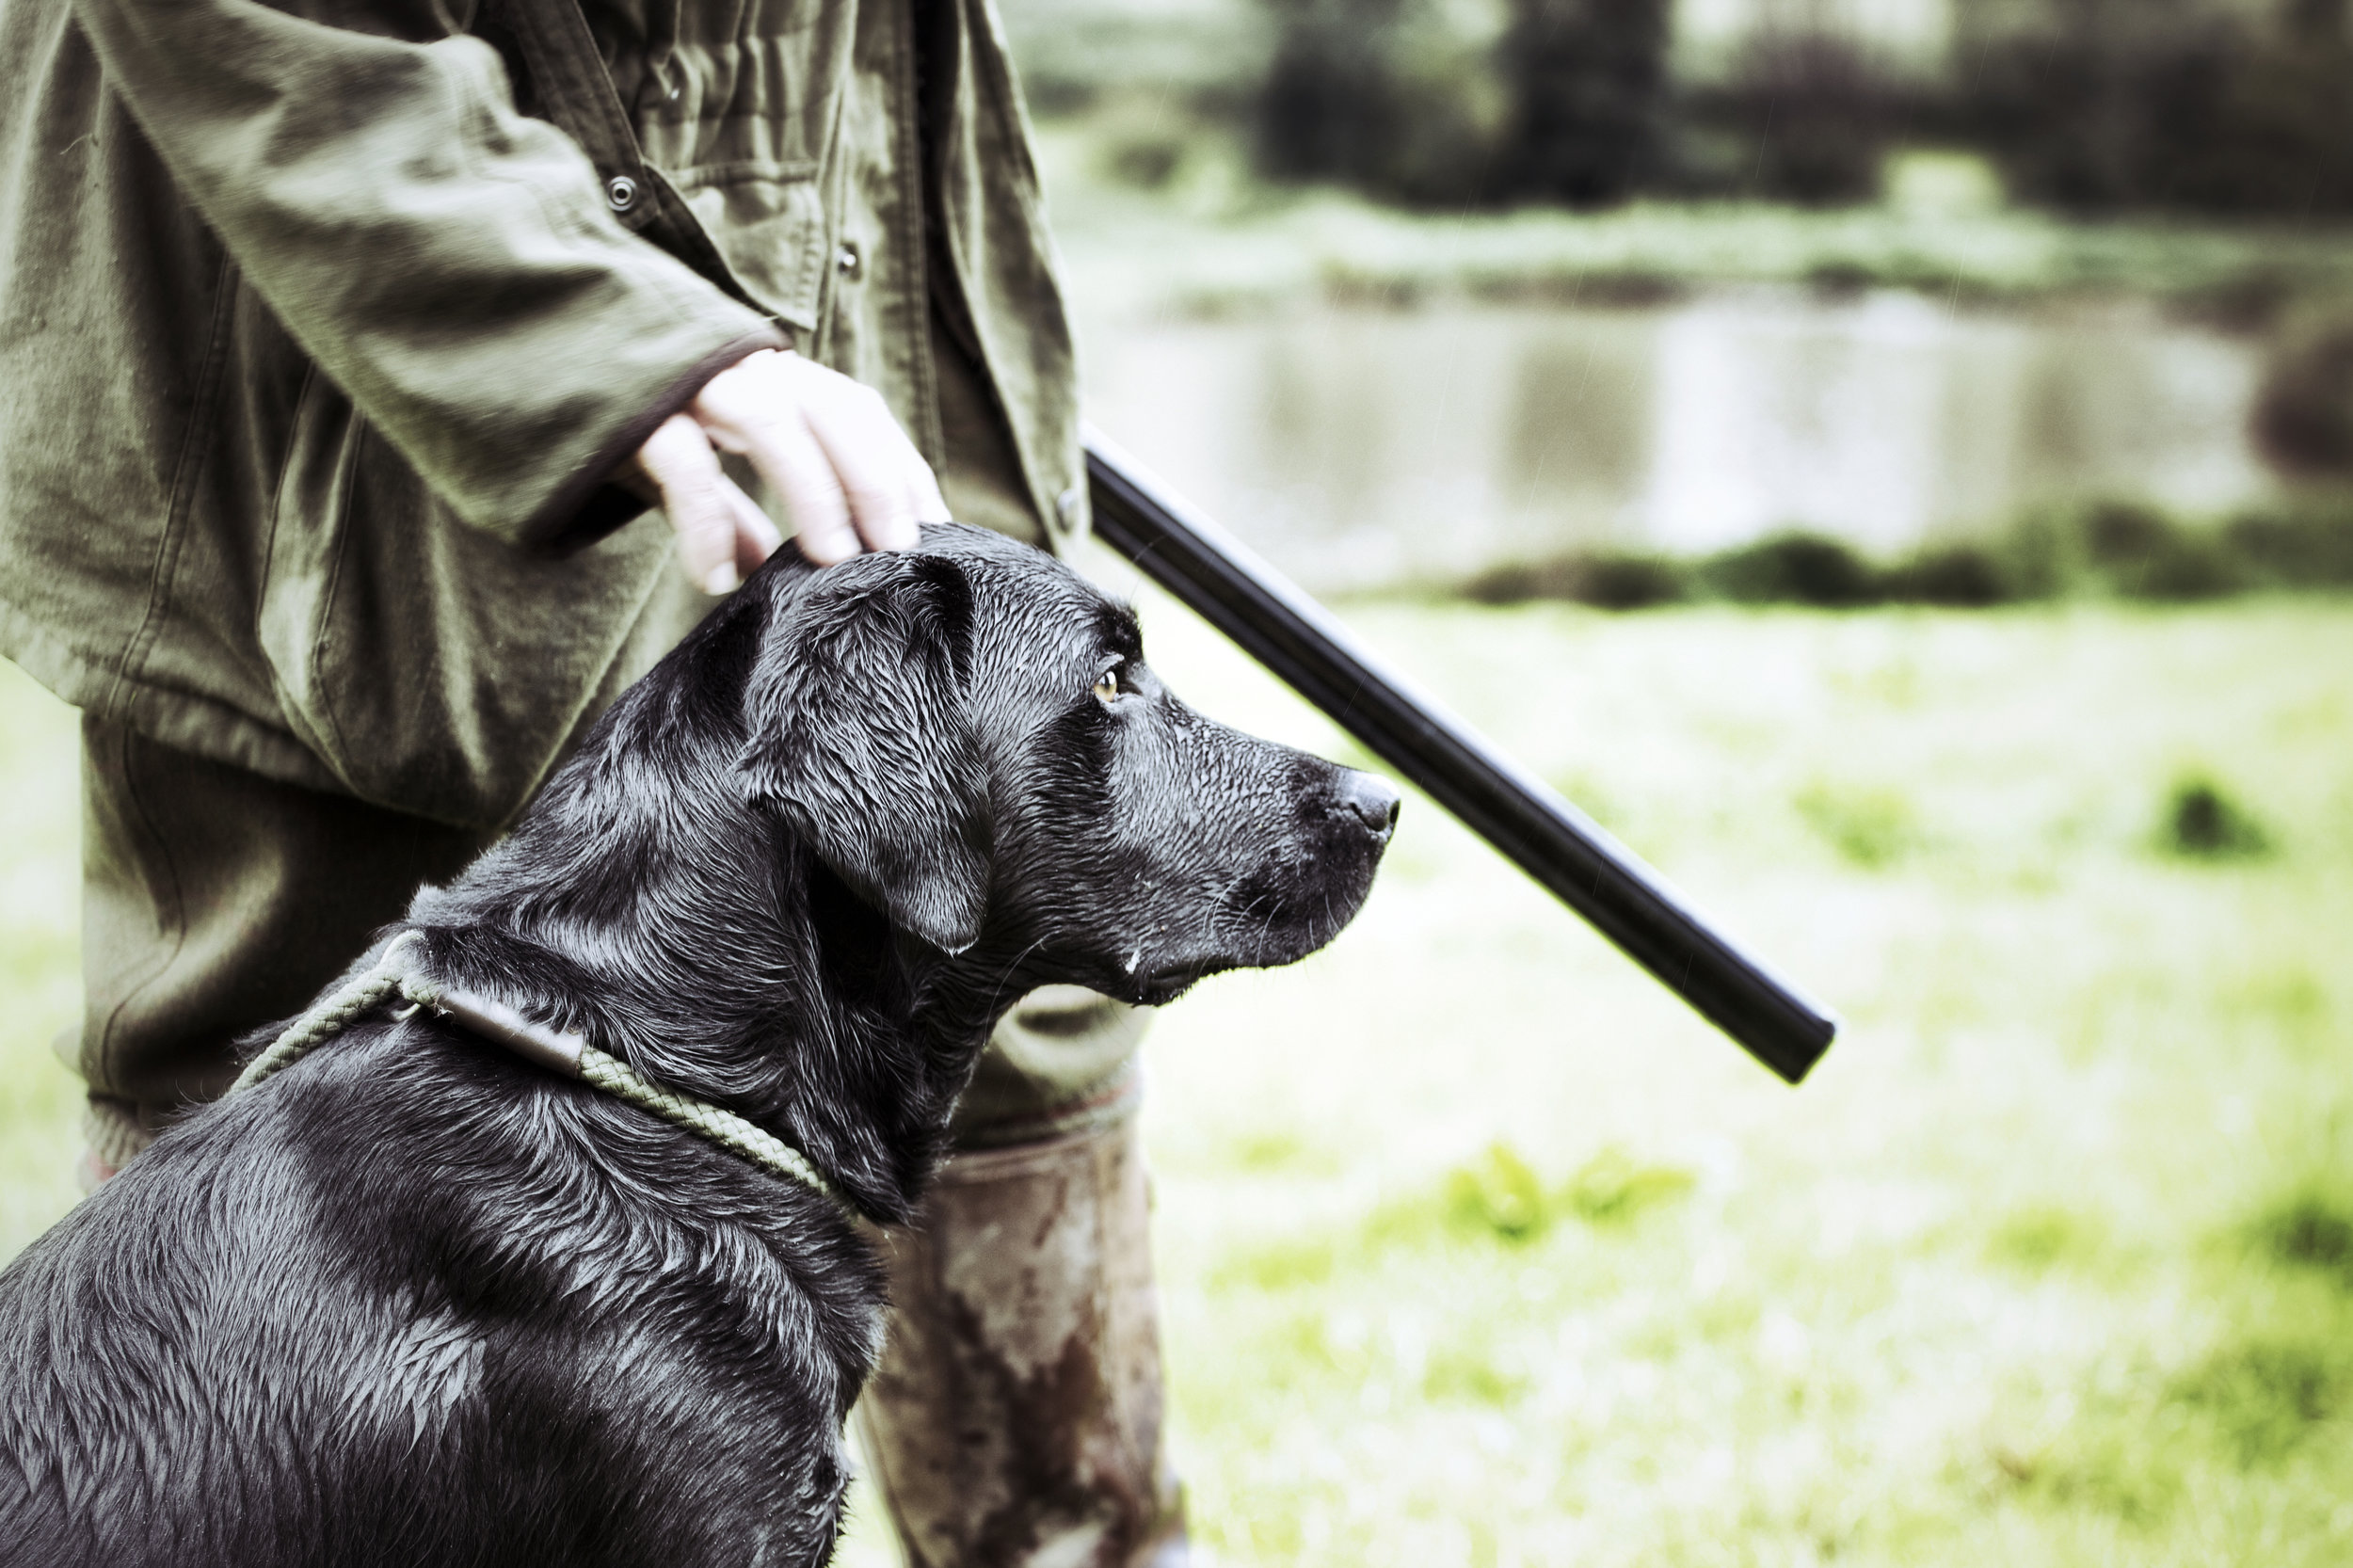 Gamekeeper--with-his-dog-154422868_3867x2578.jpeg